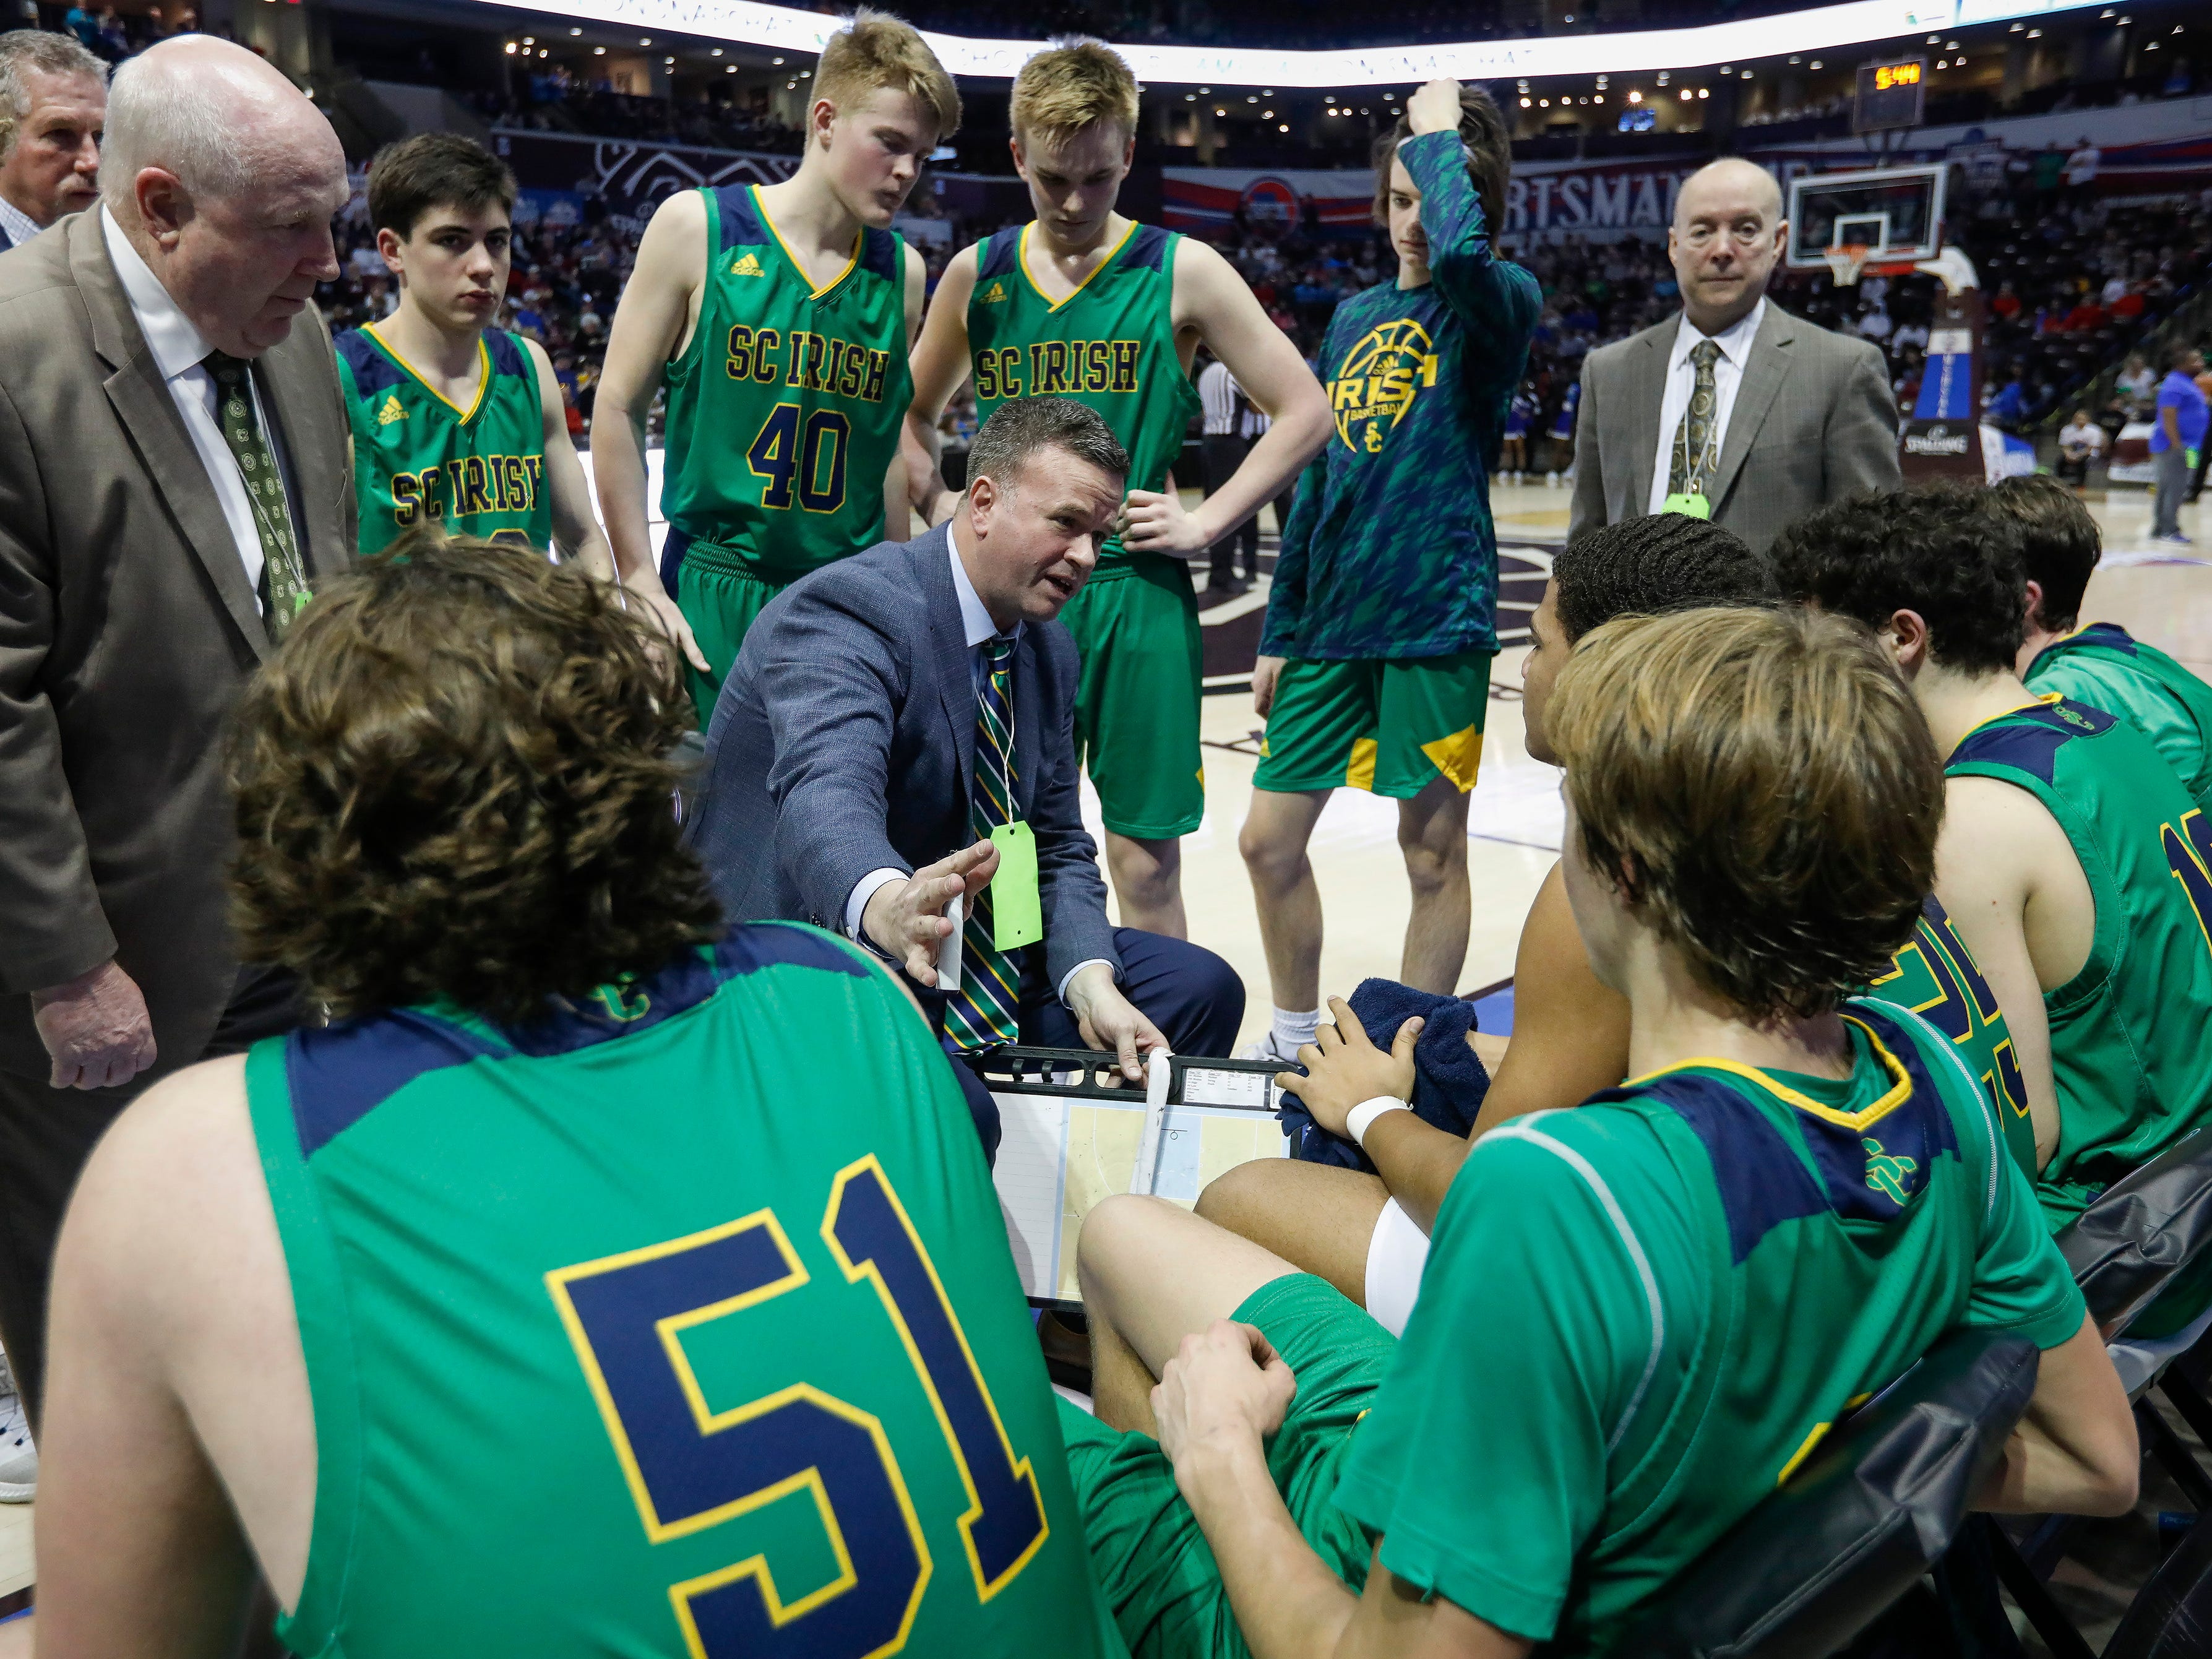 Head coach Dustin Larsen, of Springfield Catholic, talks to his team during the Irish's 69-59 loss to Vashon in the Class 3 state championship game at JQH Arena on Friday, March 8, 2019.